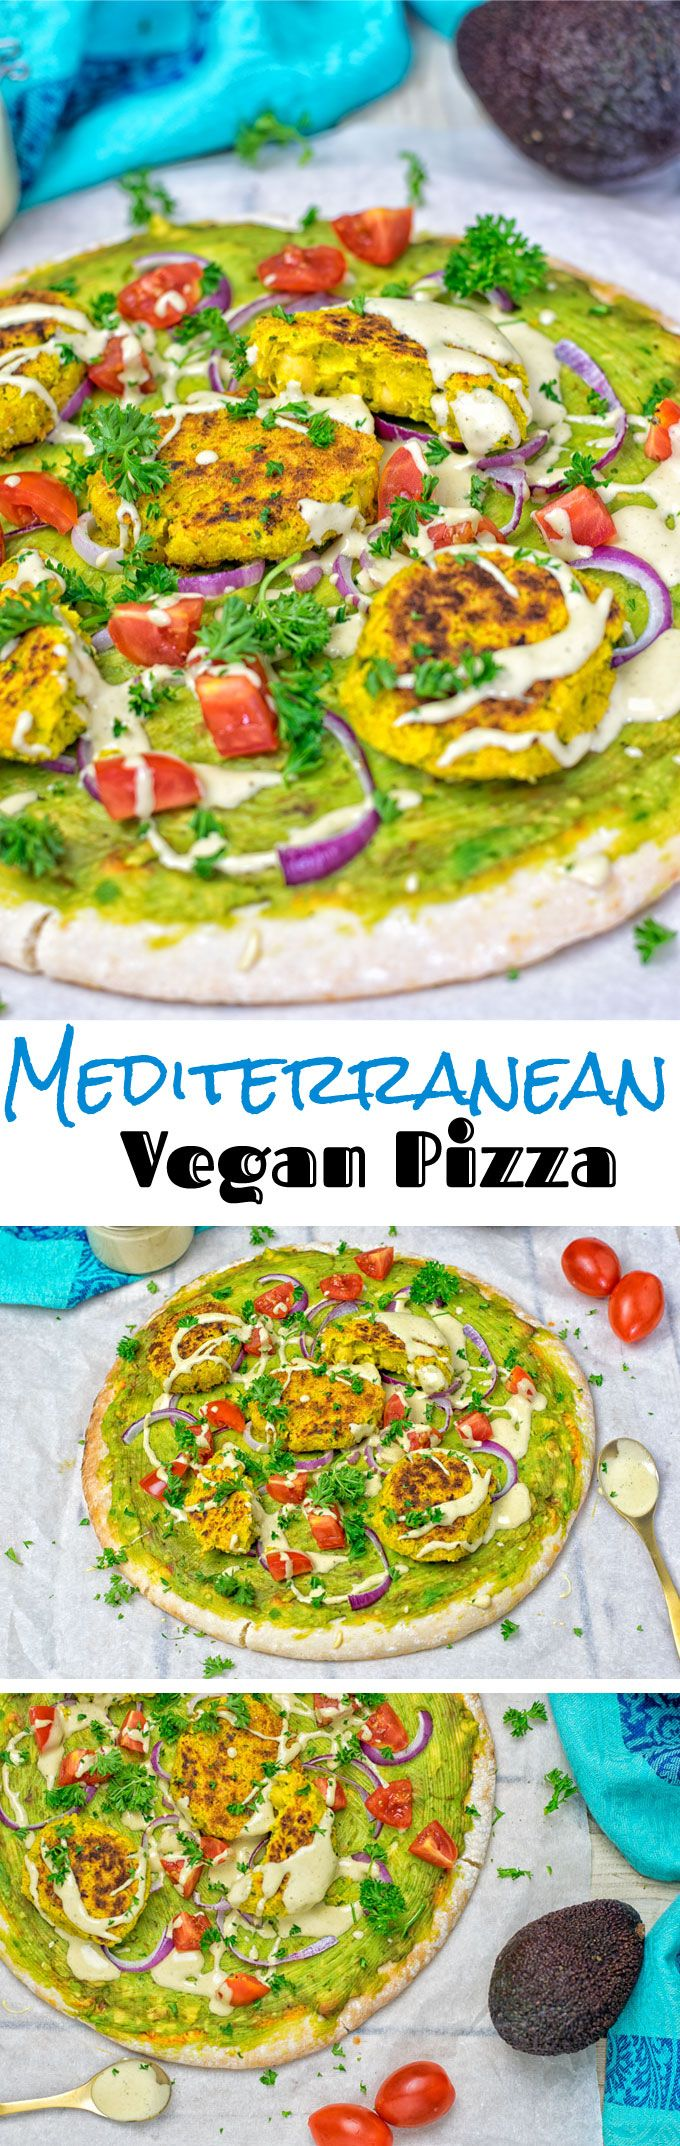 My Mediterranean Vegan Pizza comes with mashed avocado, topped with turmeric falafel. Only 6 ingredients and 3 easy steps and you are ready to enjoy your new vegan and gluten free pizza favorite at home.